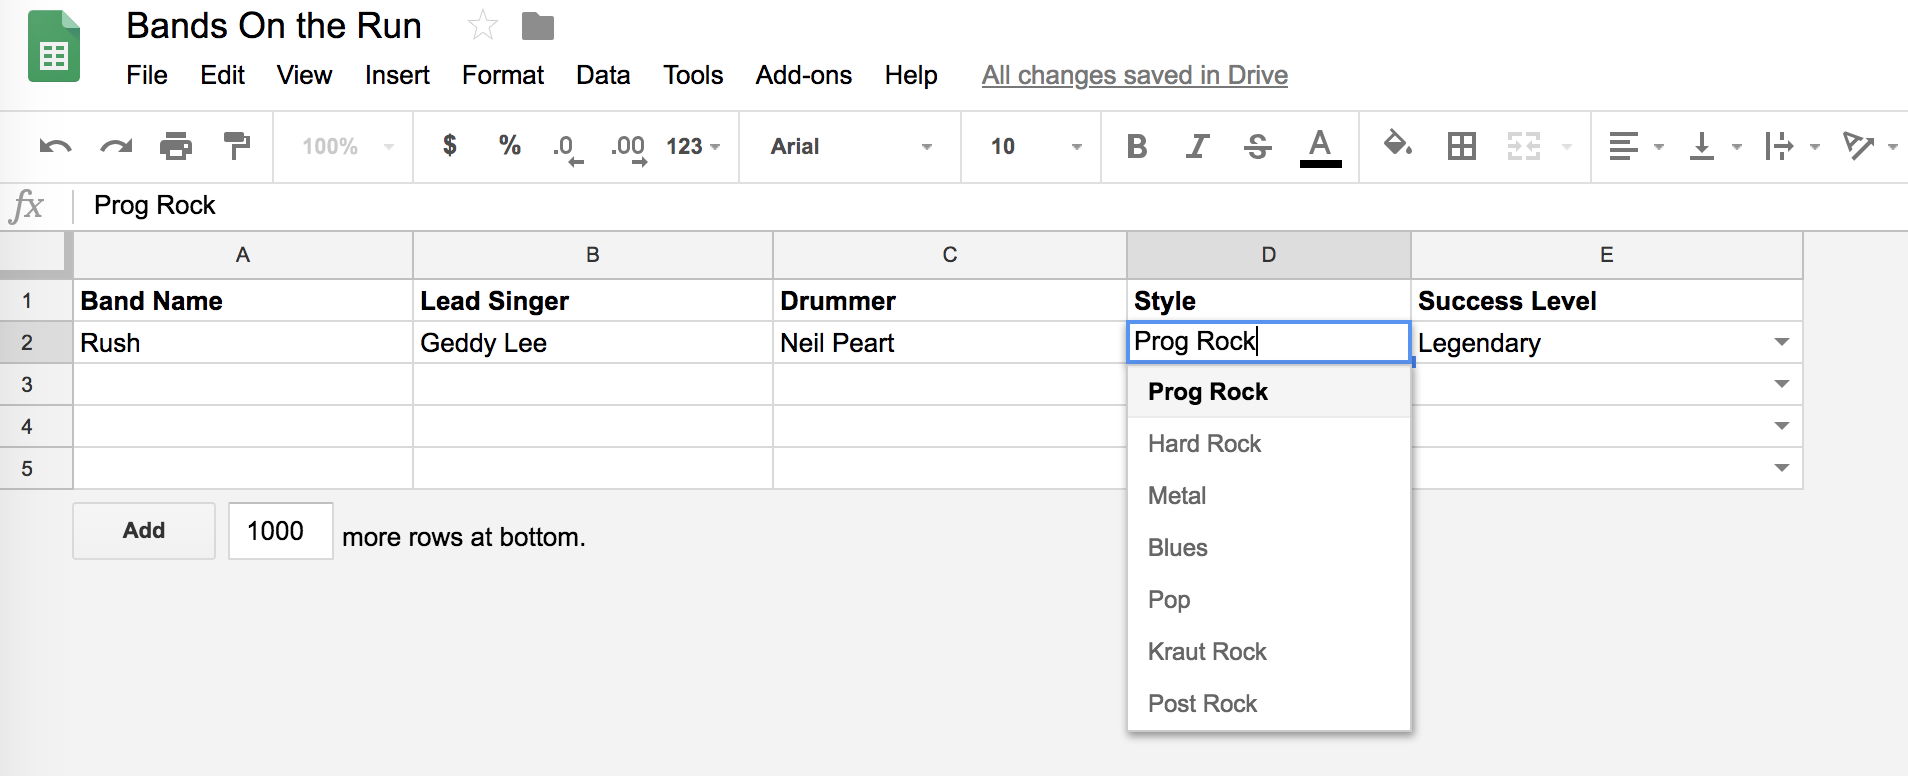 Google spreadsheet showing band listings